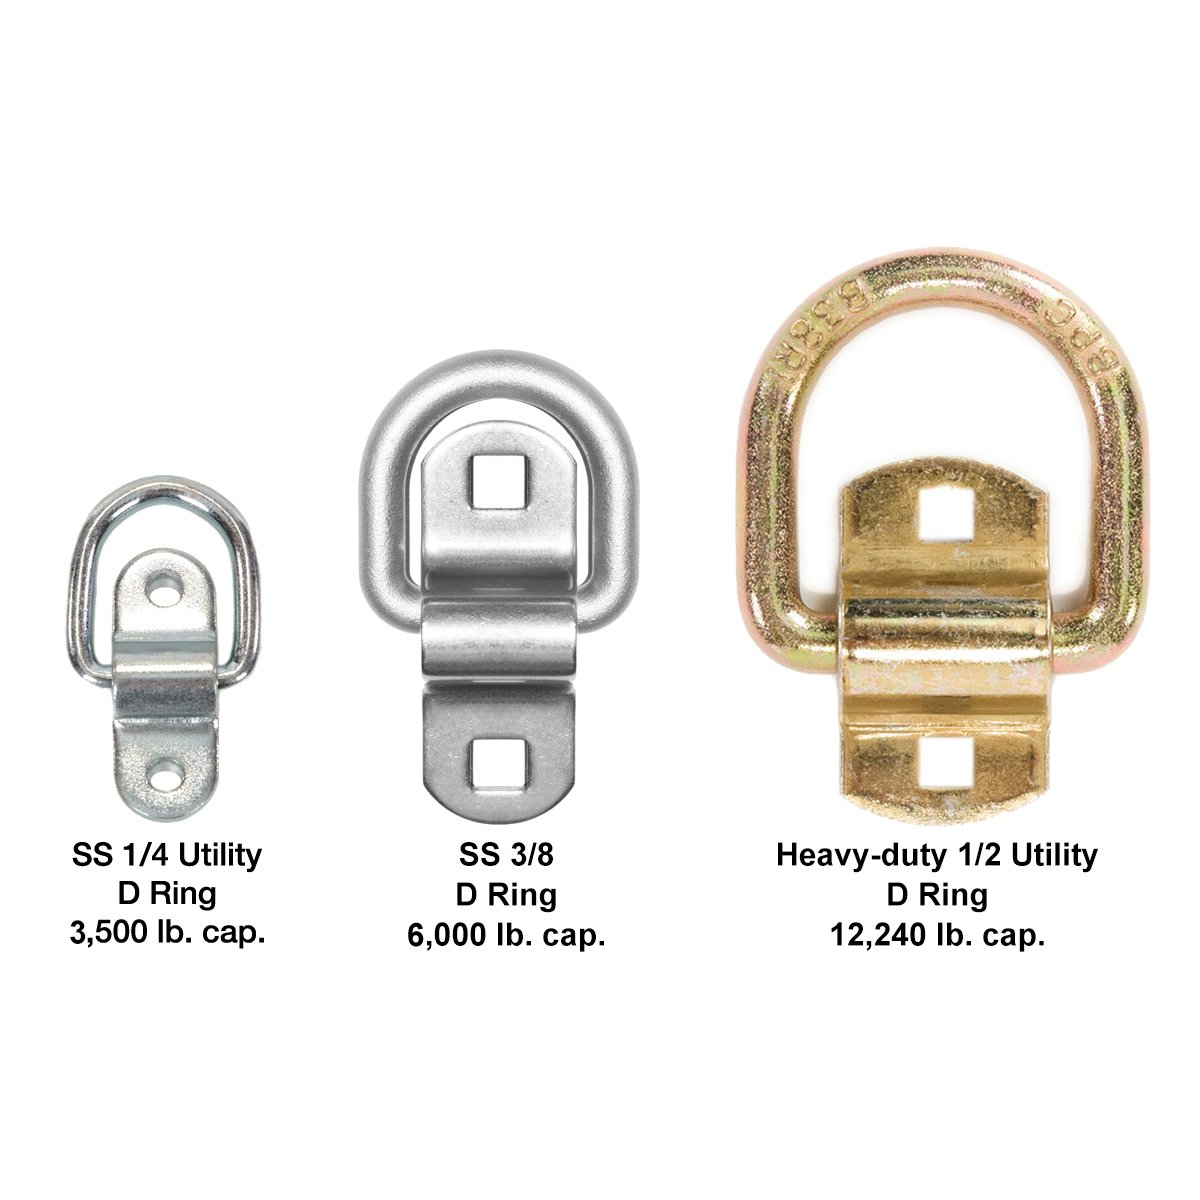 Stainless Steel Tie Down, Surface Mount D-Ring 6,000 lb. Capacity Tiedowns 8-Pack by Sierra Pacific Engineering (Image #3)